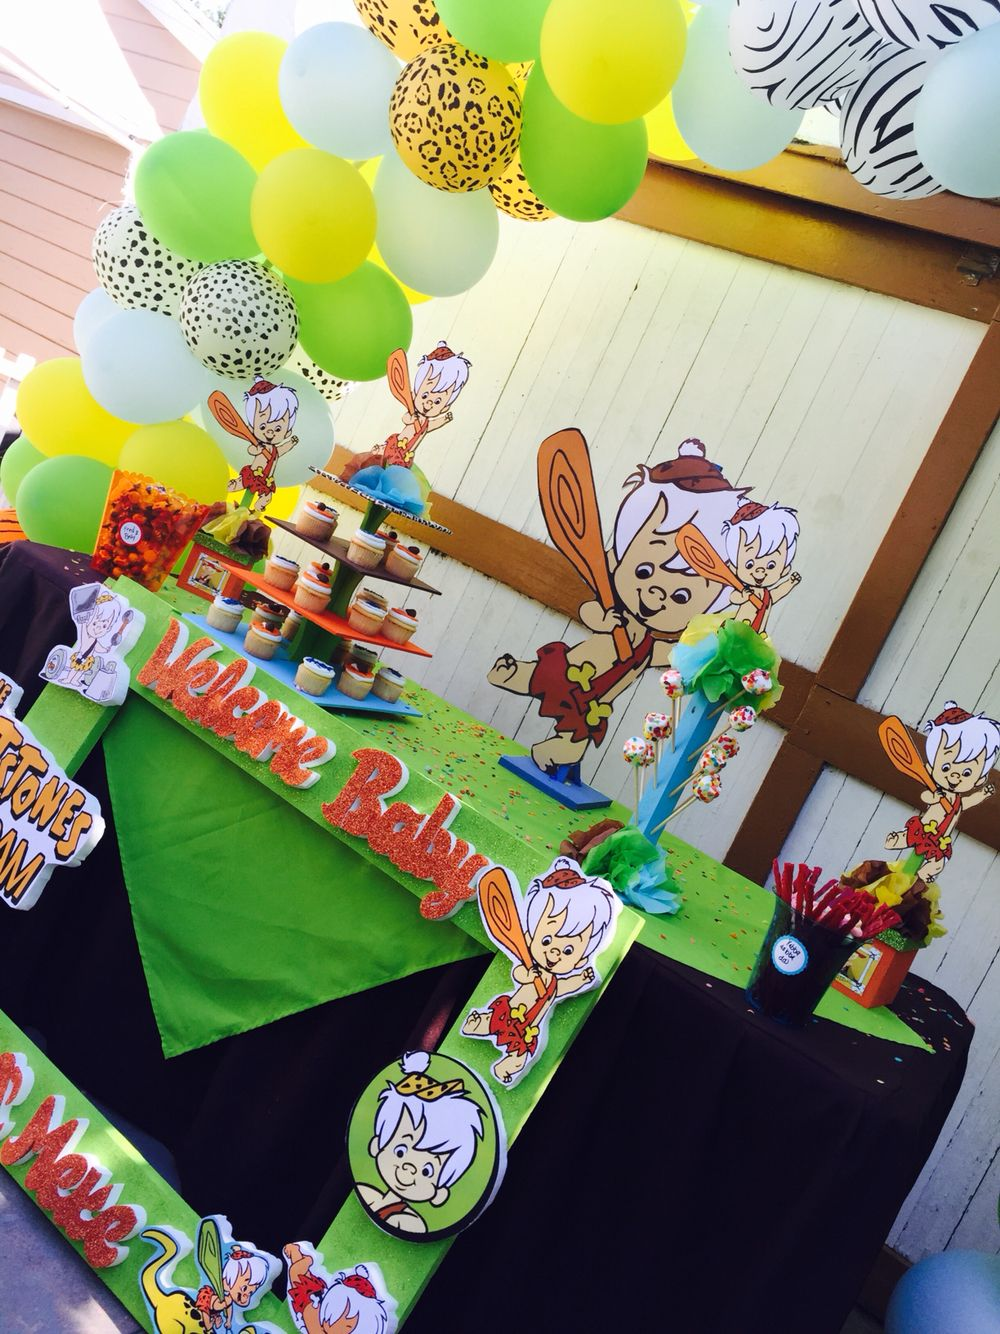 Bam Bam Decorations For Sale 8 Center Pieces Cup Cake